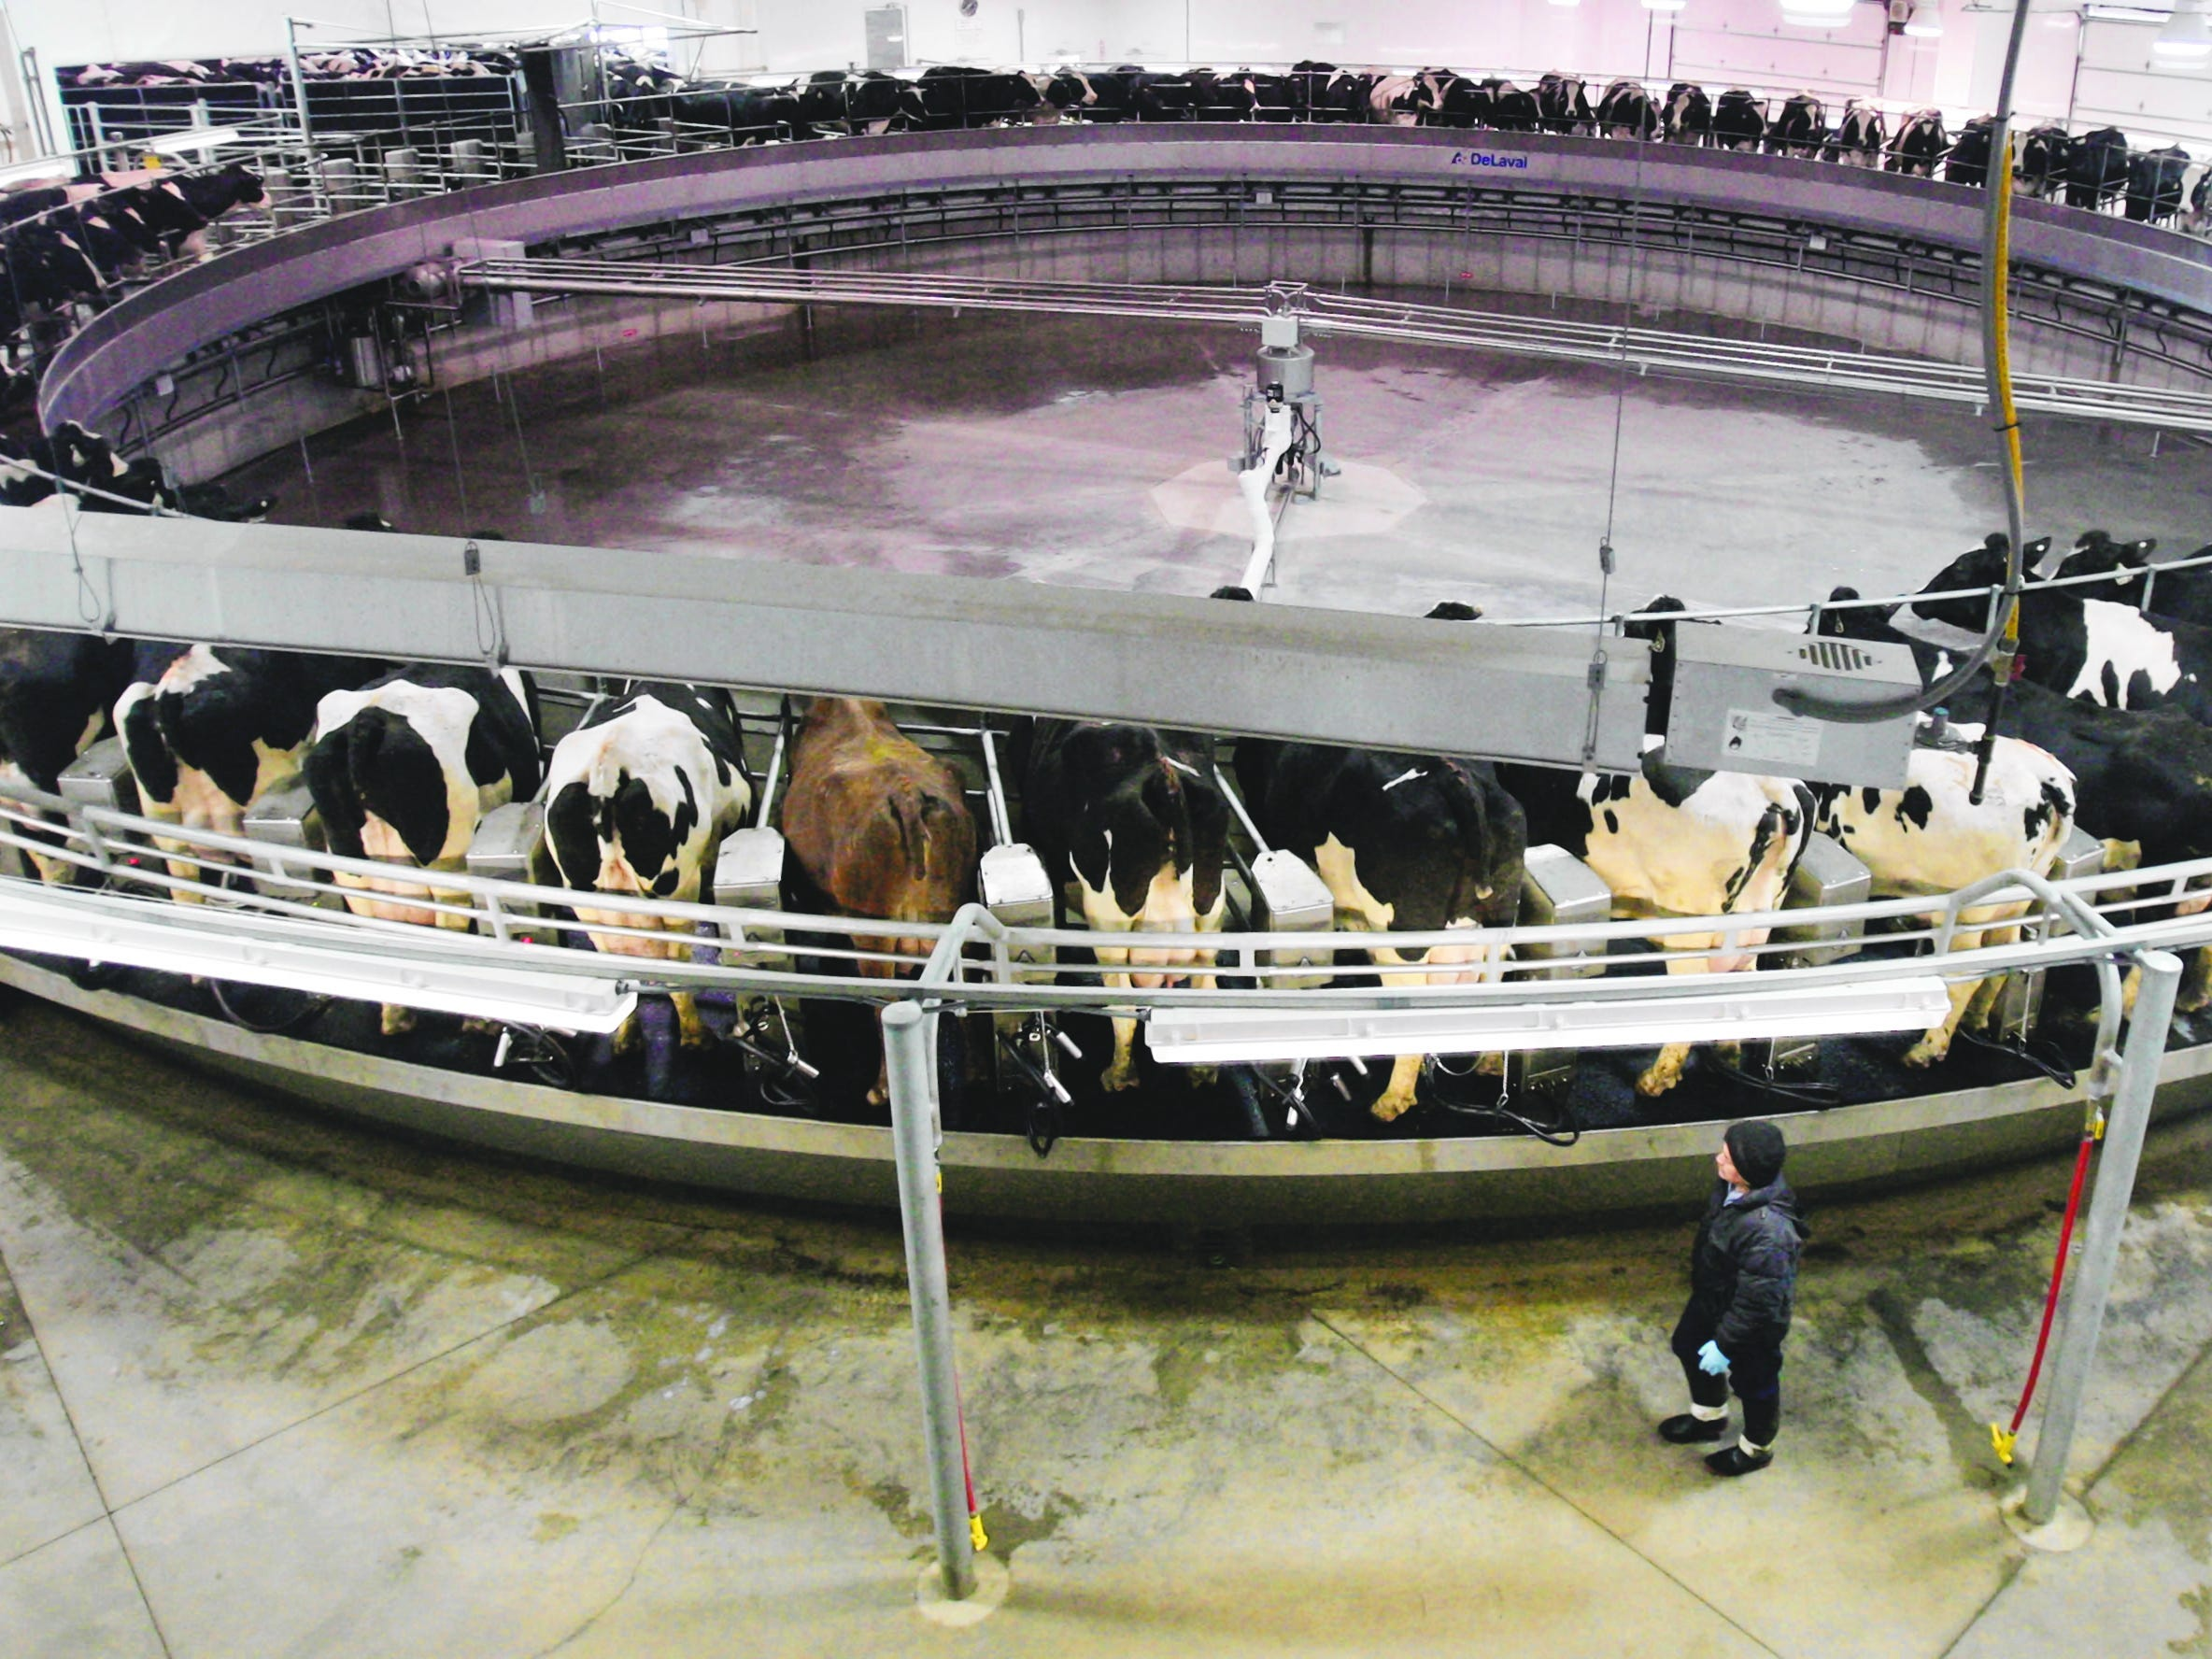 2009: At the Rosendale Dairy near Rosendale, it takes nine minutes for the cows to be milked on the $1 million 80-stall rotary milking parlor.